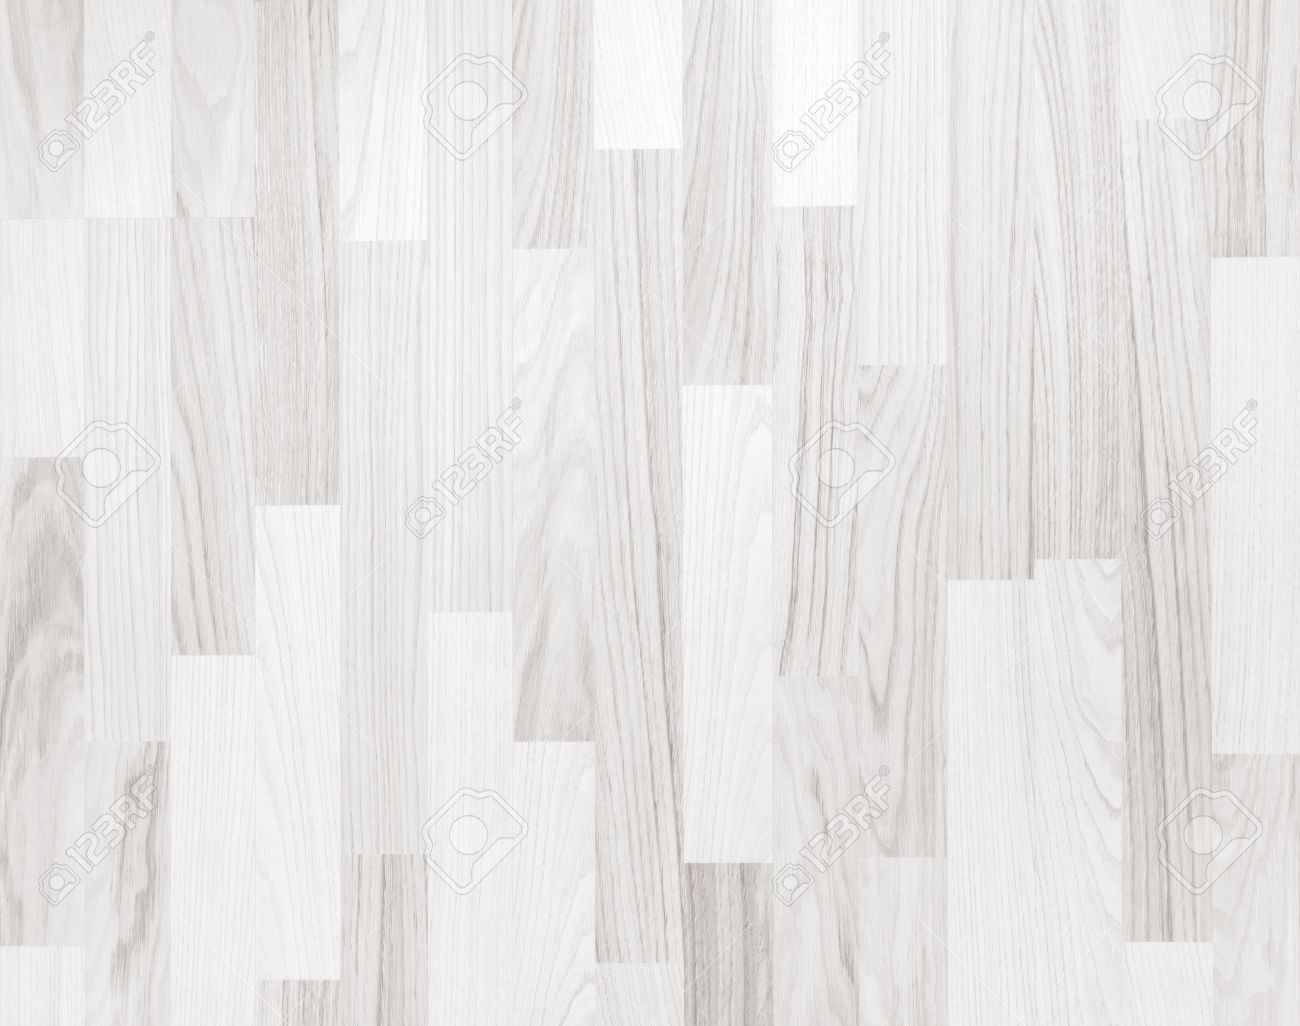 Beautiful White Wooden Parquet Flooring Texture Horizontal Seamless Background Stock  Photo 20419919 Wooden Parquet Flooring Texture Seamless.